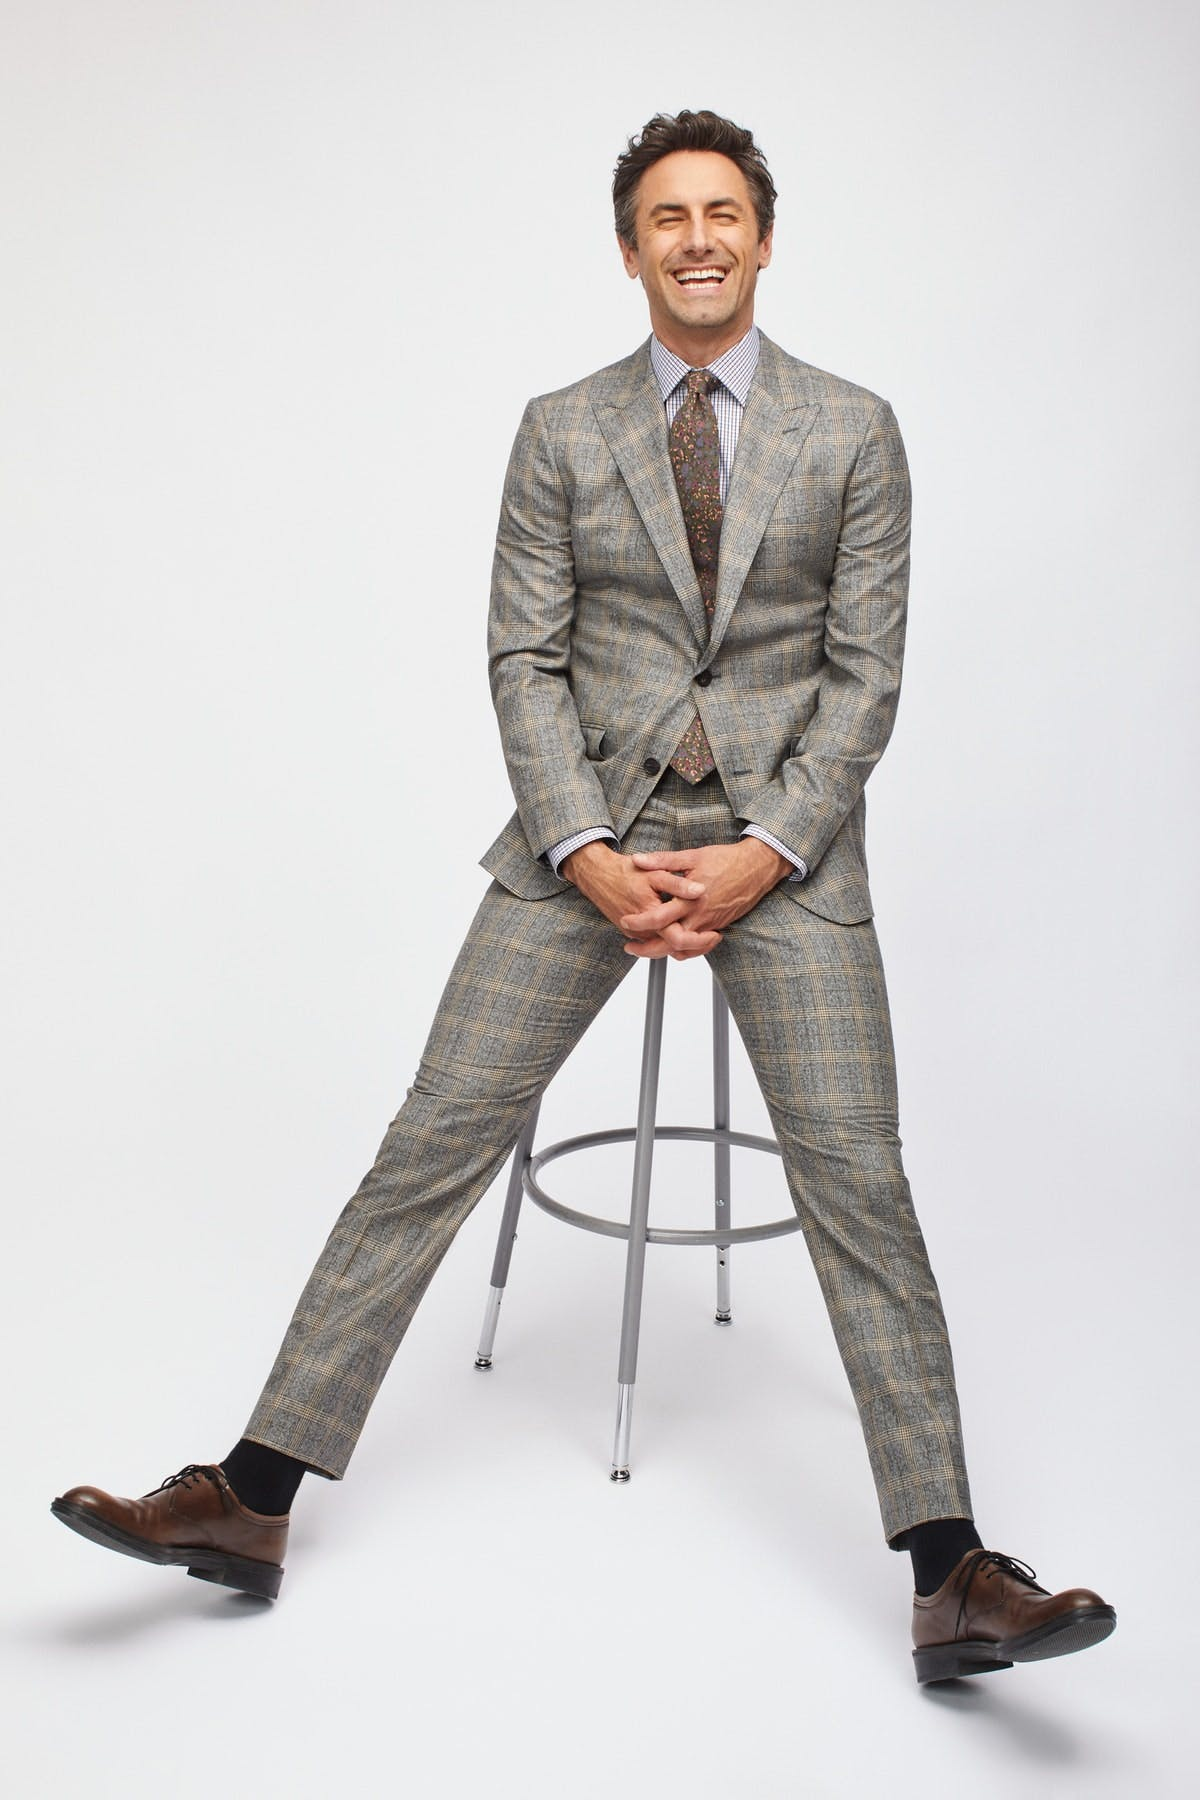 image of a man wearing a Bonobos suit